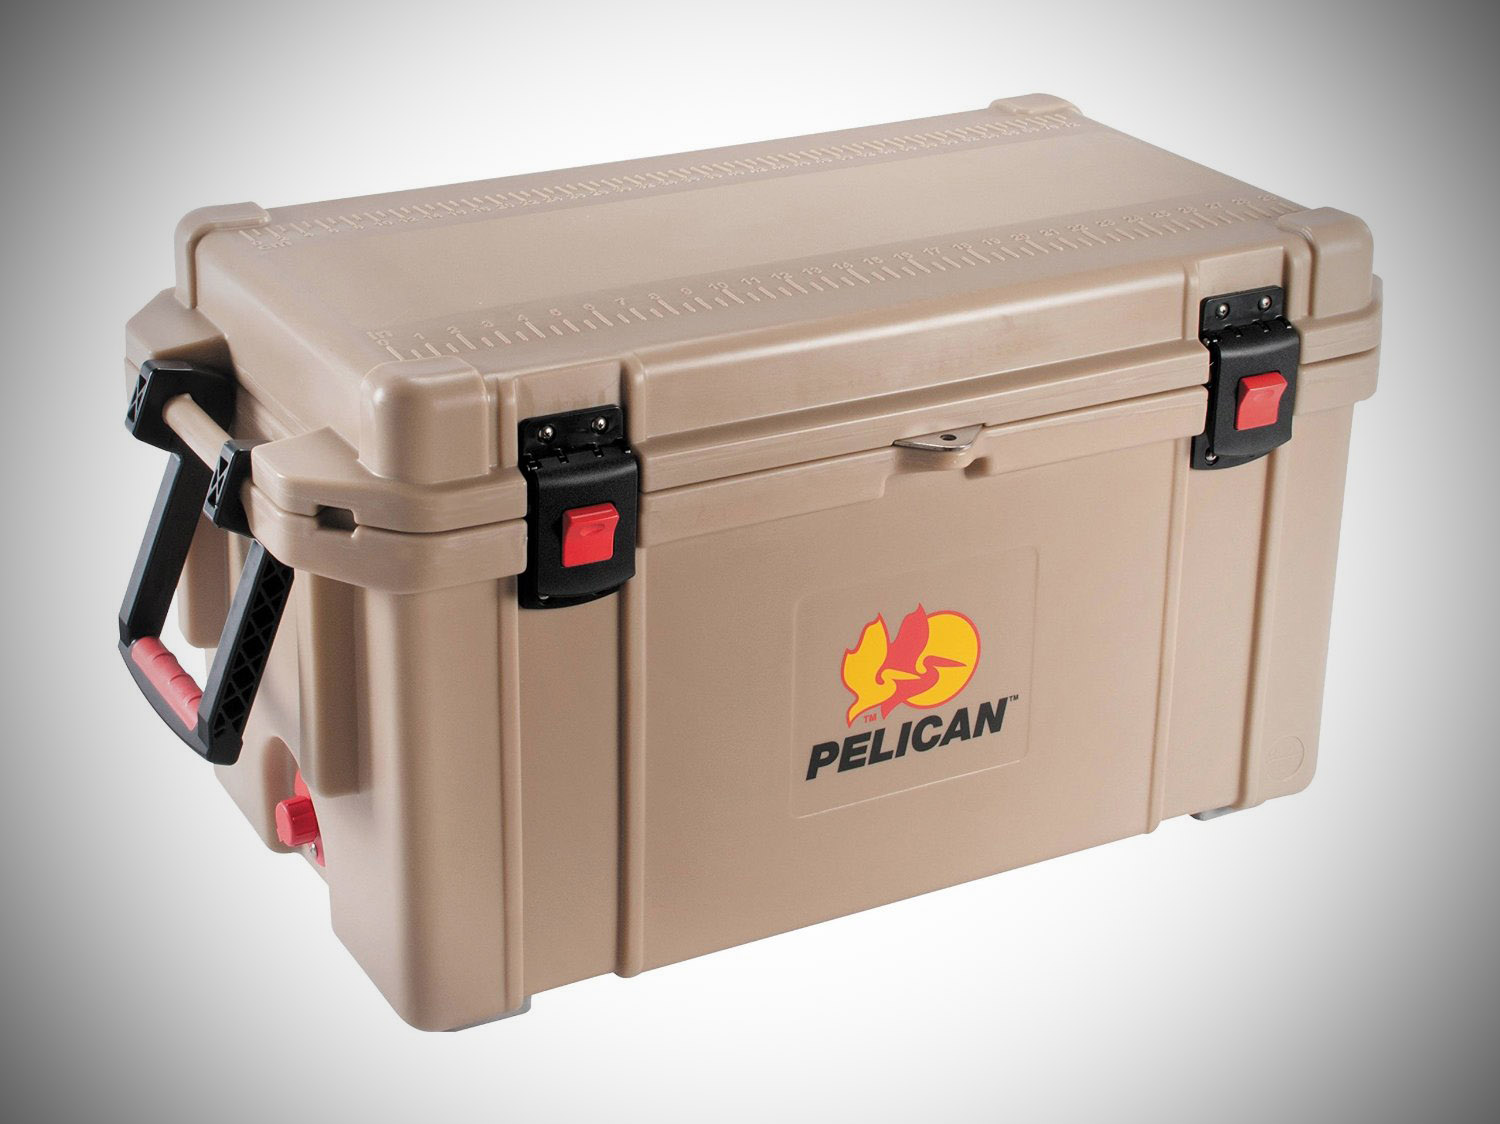 Pelican Coolers For Sale Are They Worth It Outdoor